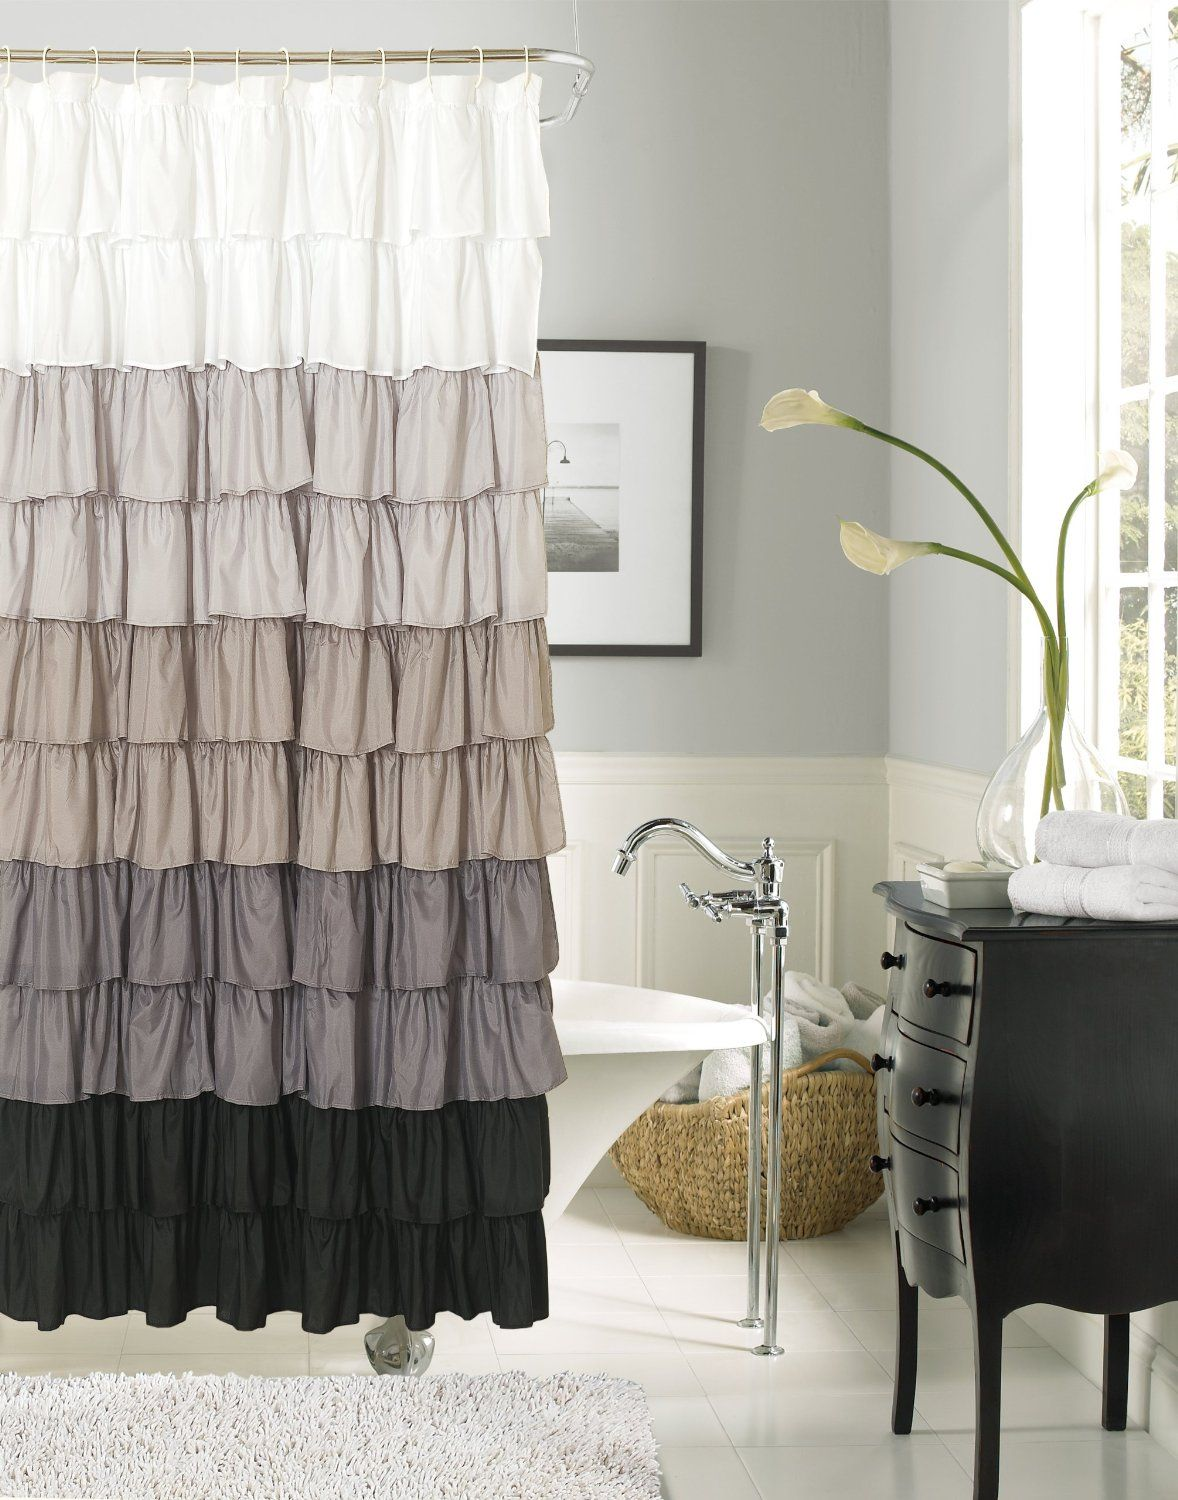 New In Package Dainty Home Flamenco Ruffled Shower Curtain 70 X 72 Black Grey